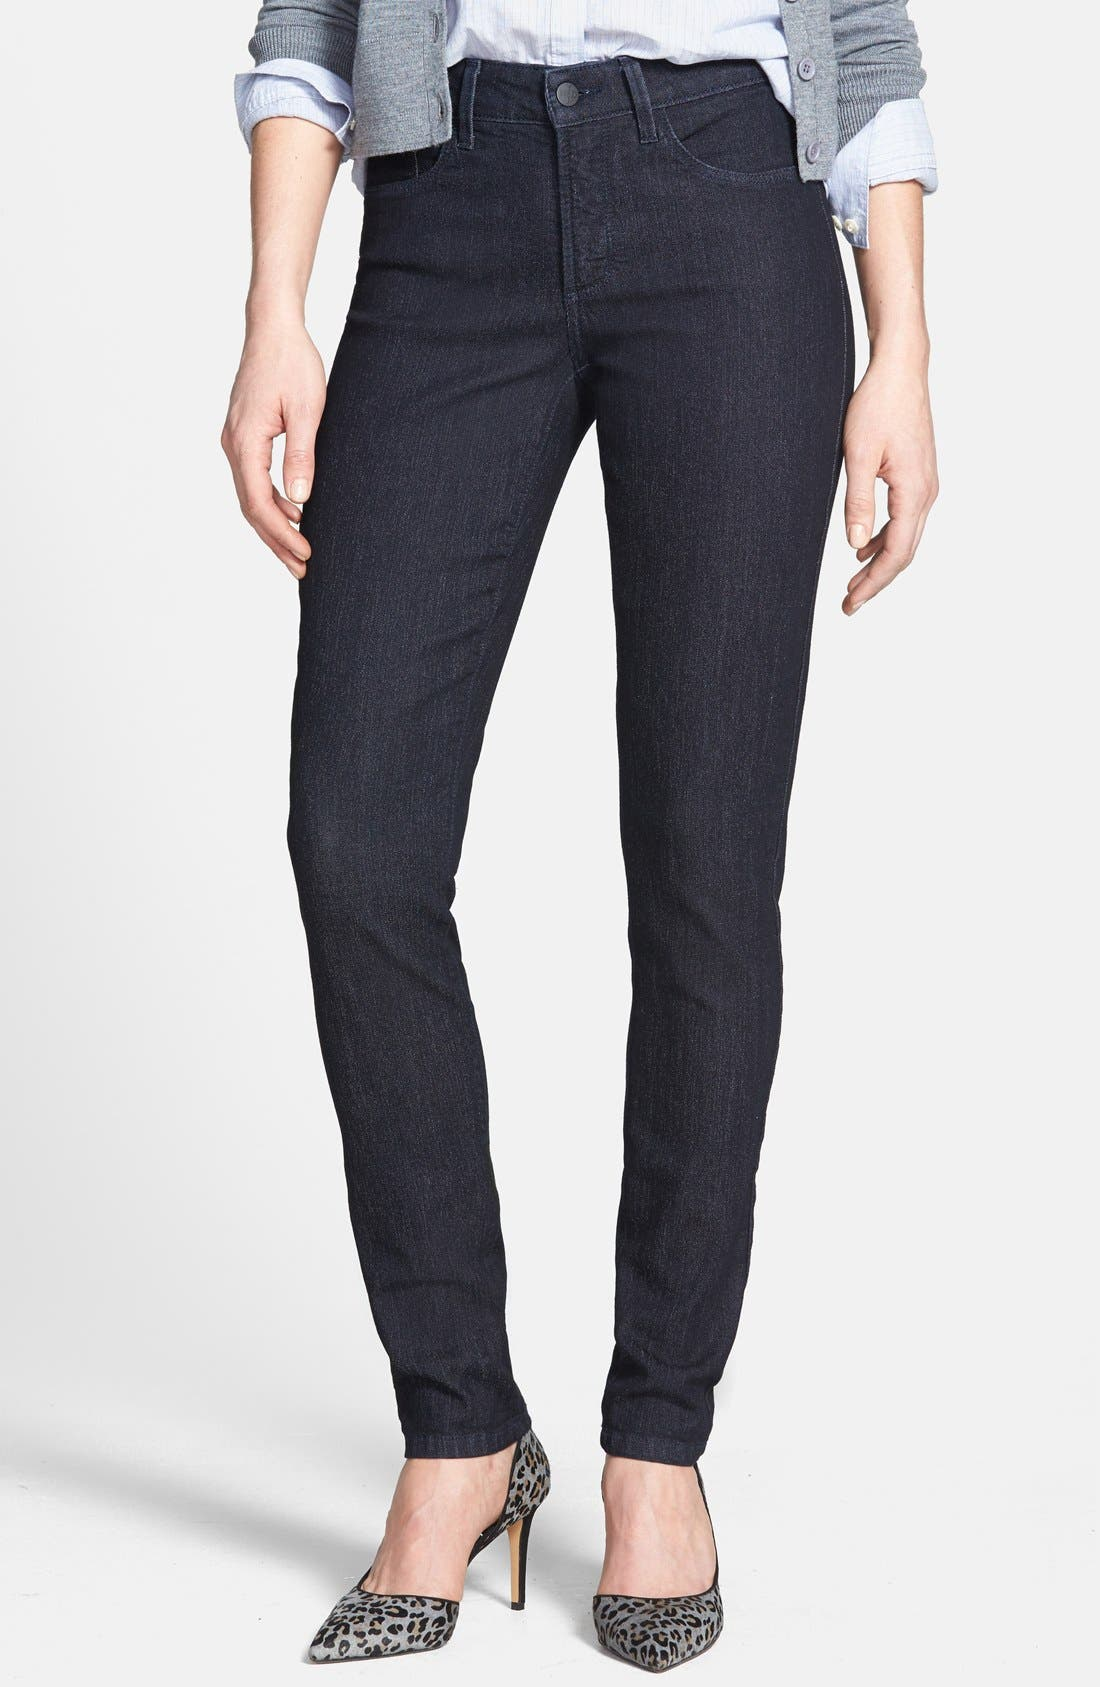 Alternate Image 1 Selected - NYDJ 'Ami' Stretch Super Skinny Jeans (Irving) (Online Only)